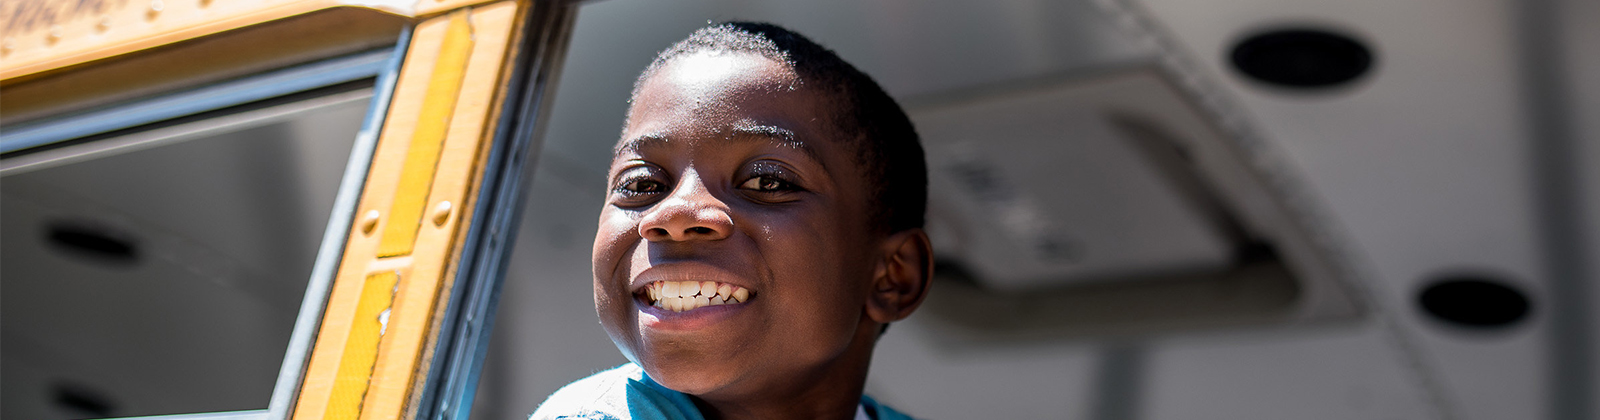 Child looking out bus window smiling